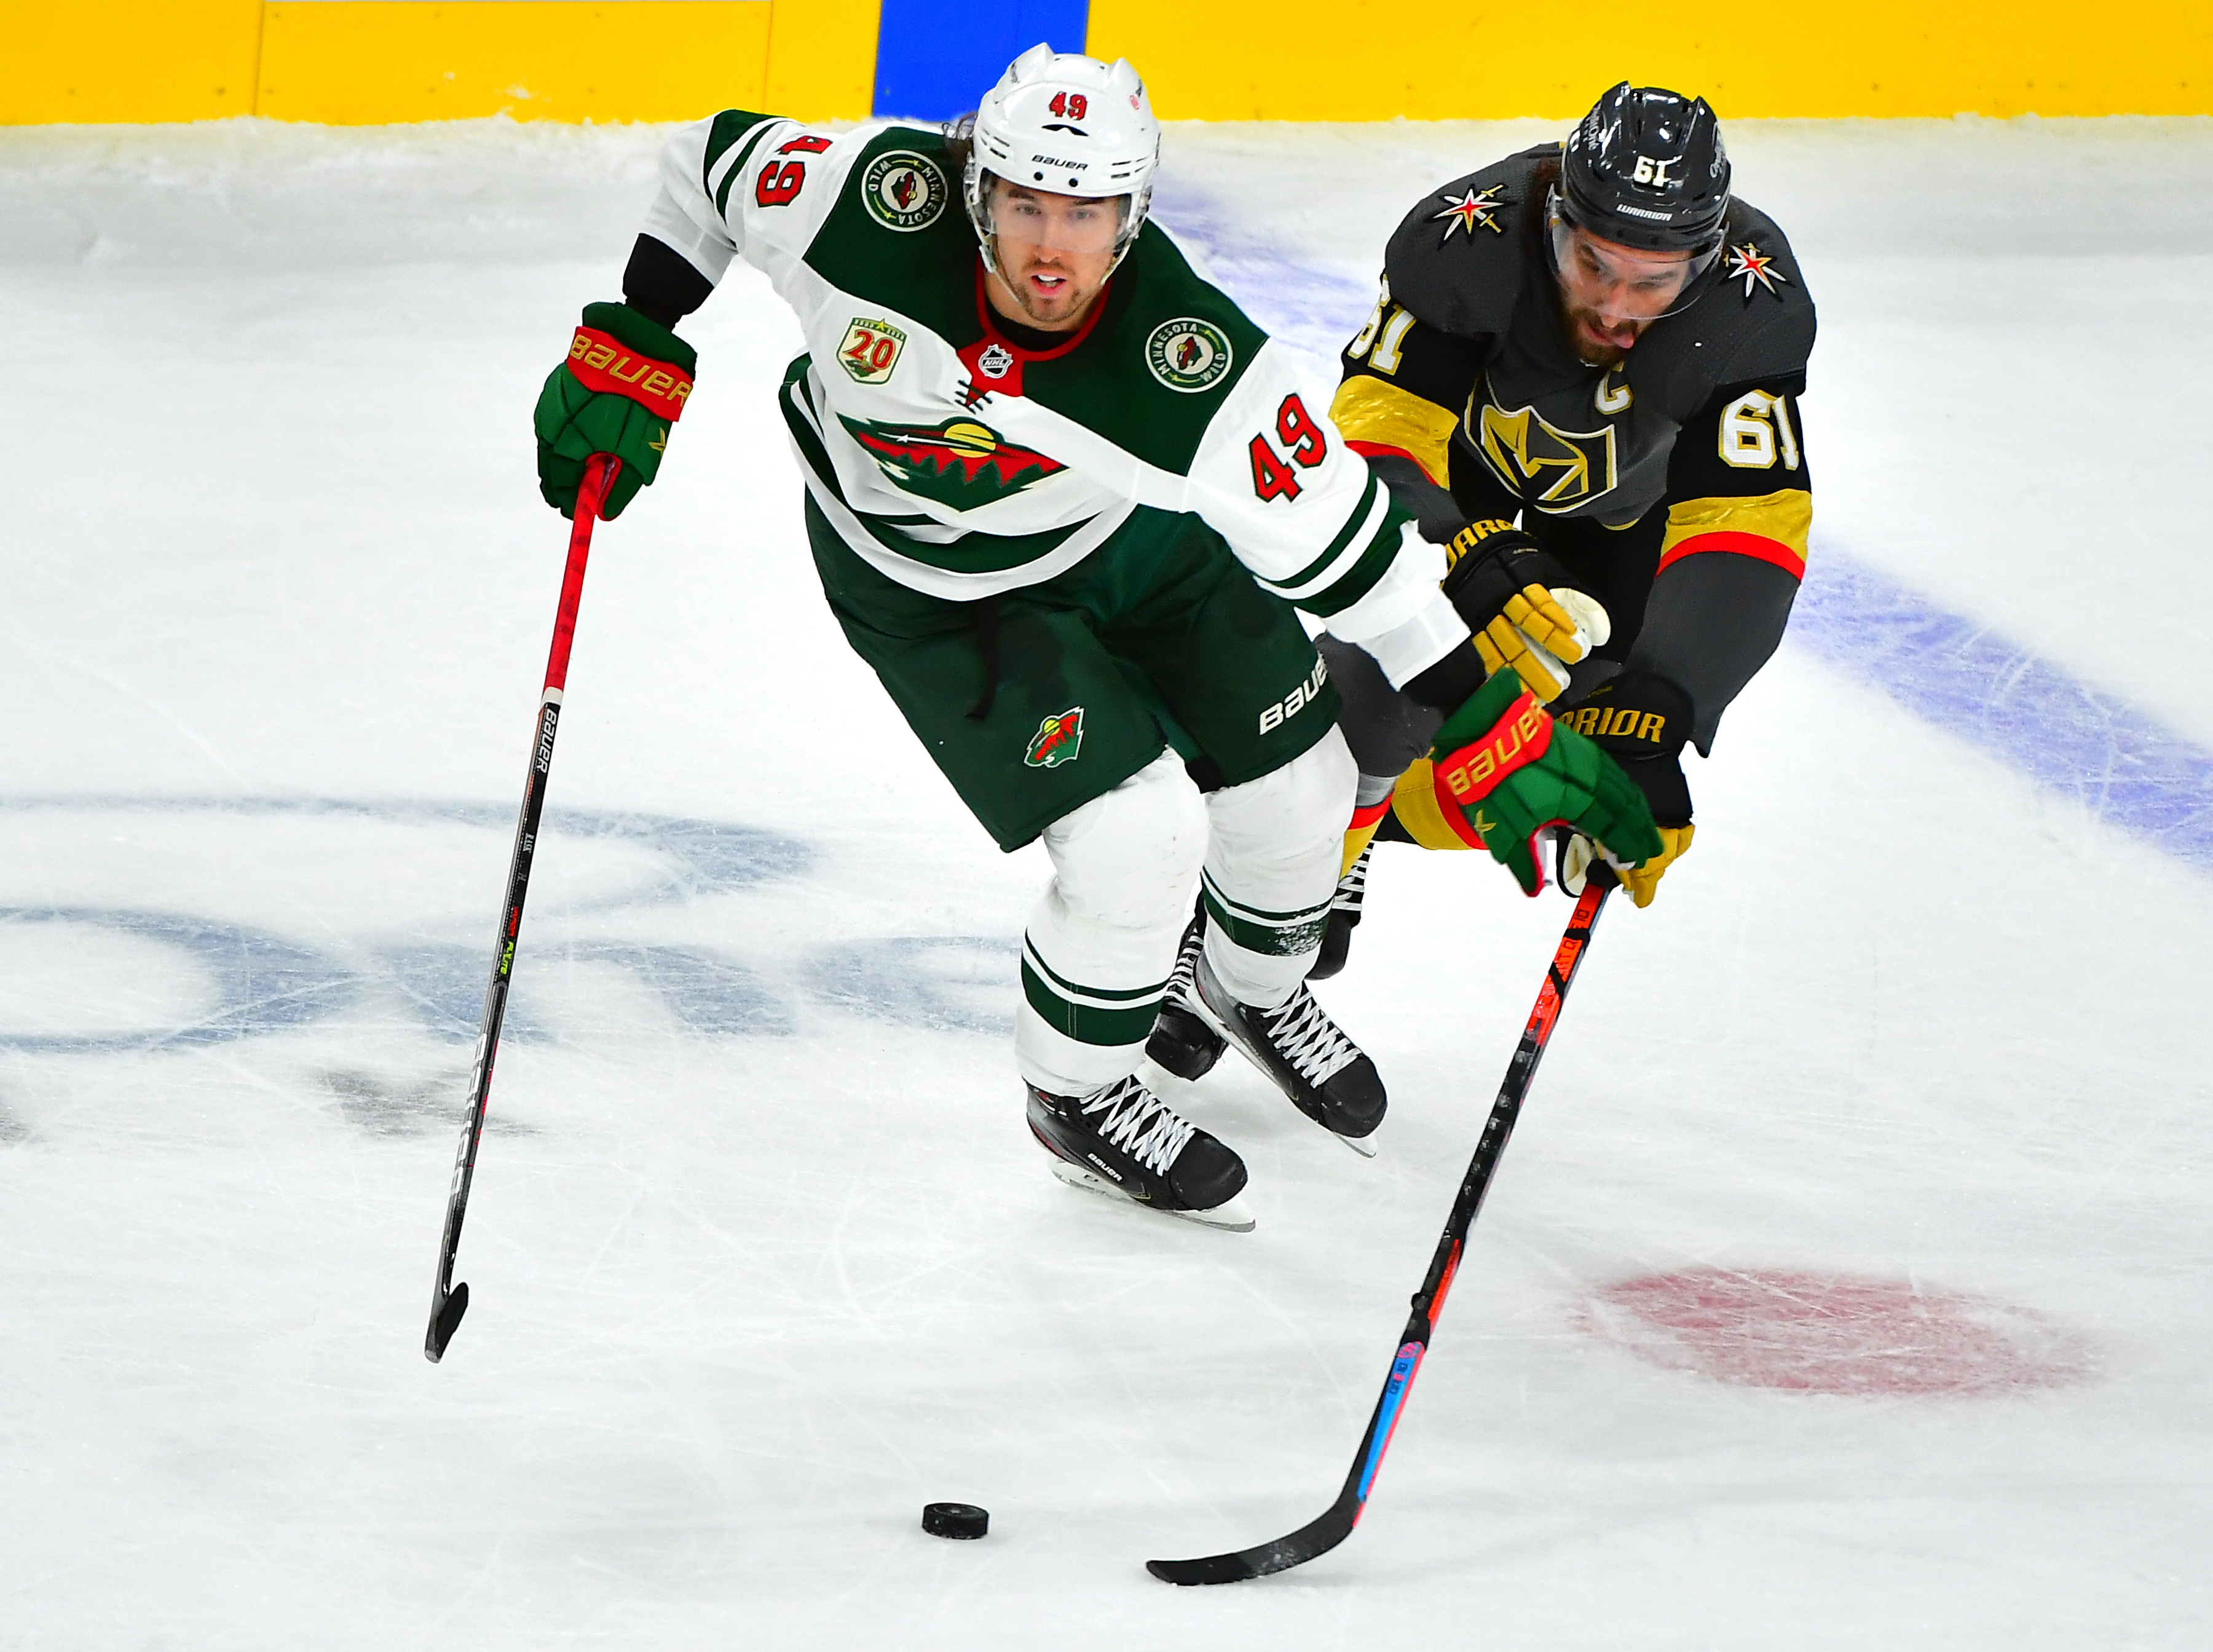 Playoff Preview Game #6: Minnesota Wild vs. Vegas Golden Knights 5/26/21 @ 8:00PM CST at Xcel Energy Center